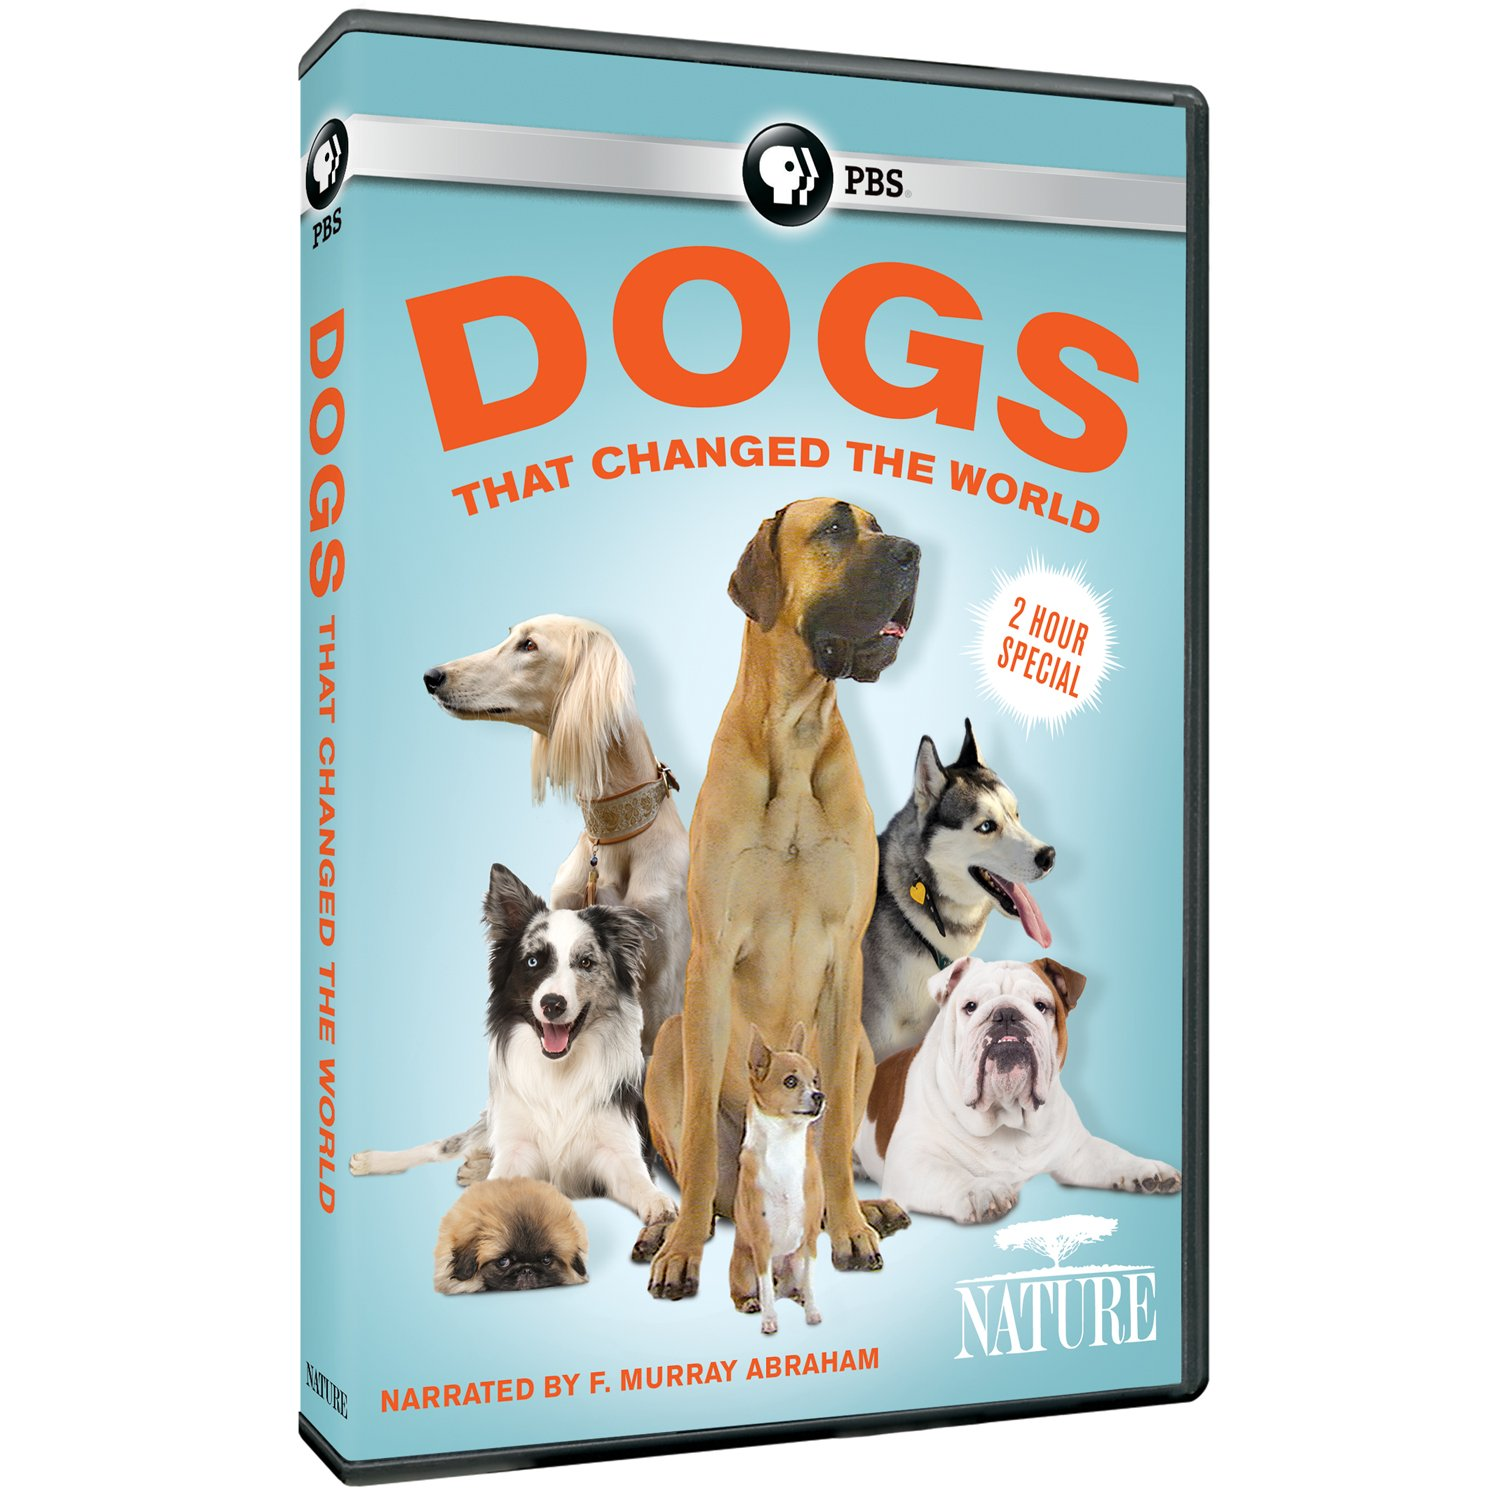 NATURE: Dogs that Changed the World (2016) DVD